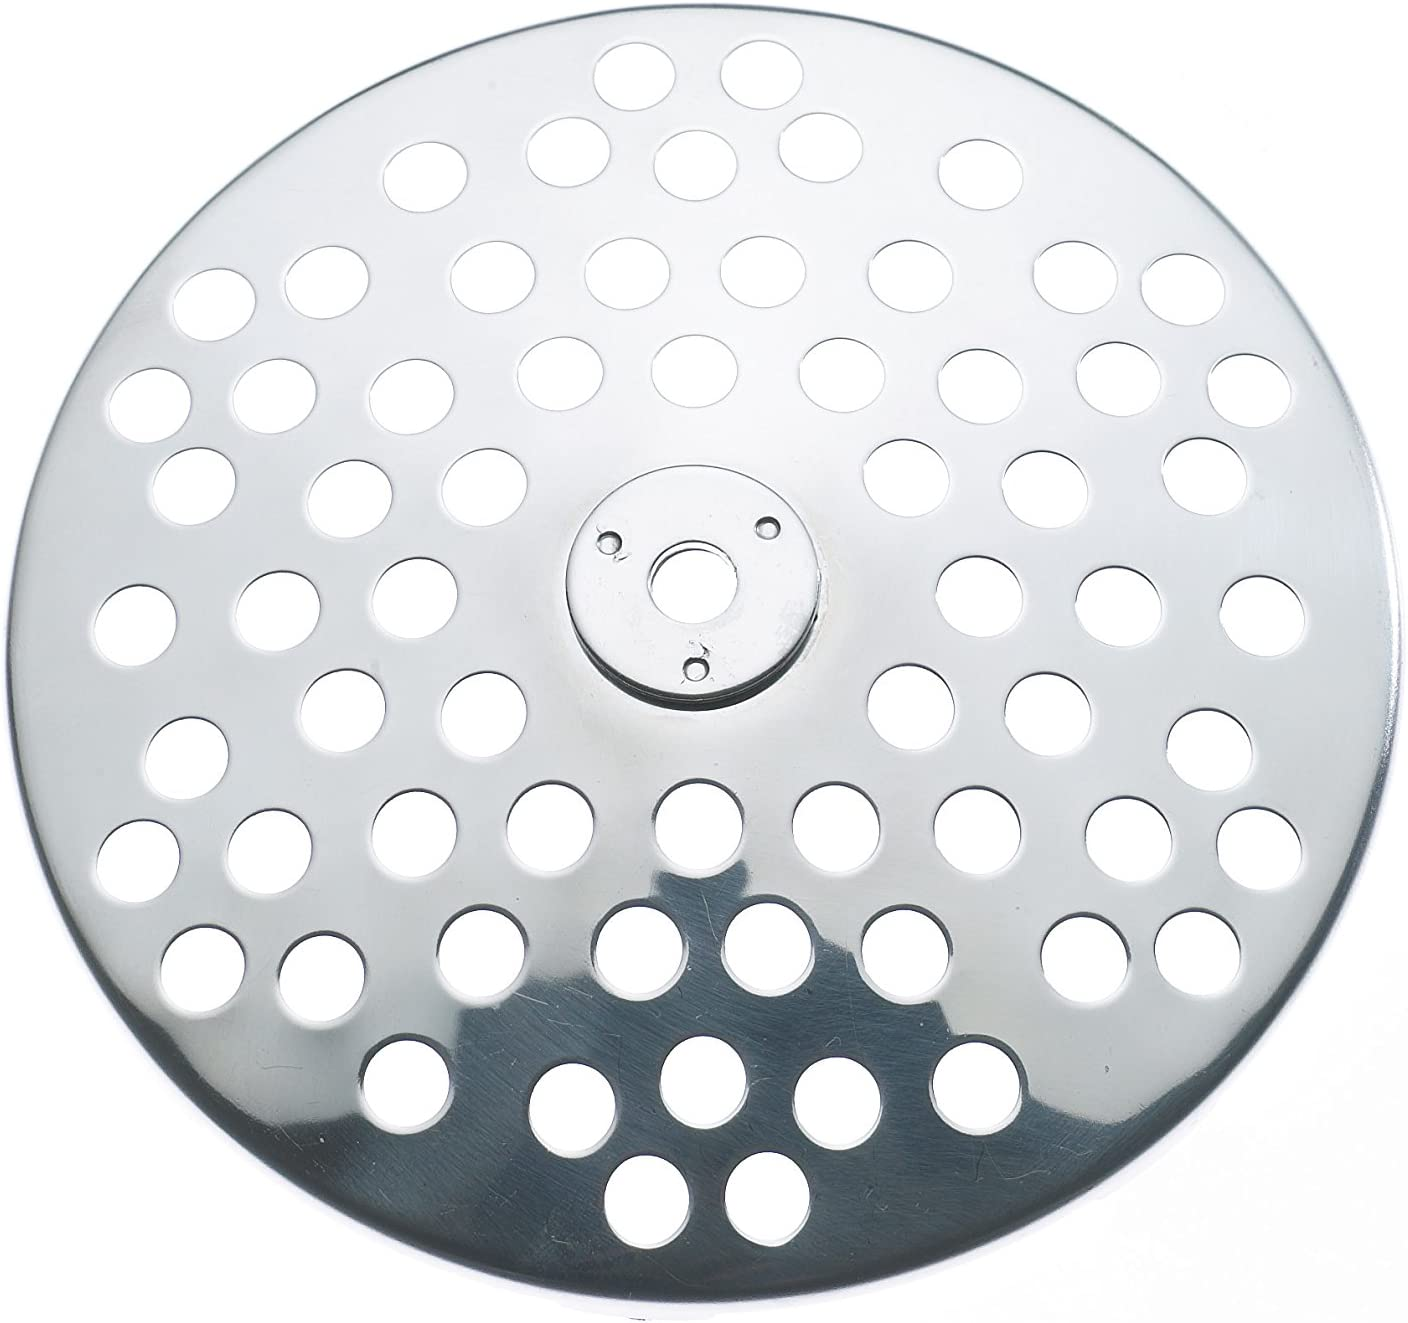 8mm Gefu Strainer Disc for Food Mill Flotte Lotte, Replacement, St. Steel, 8mm Hole, 24215